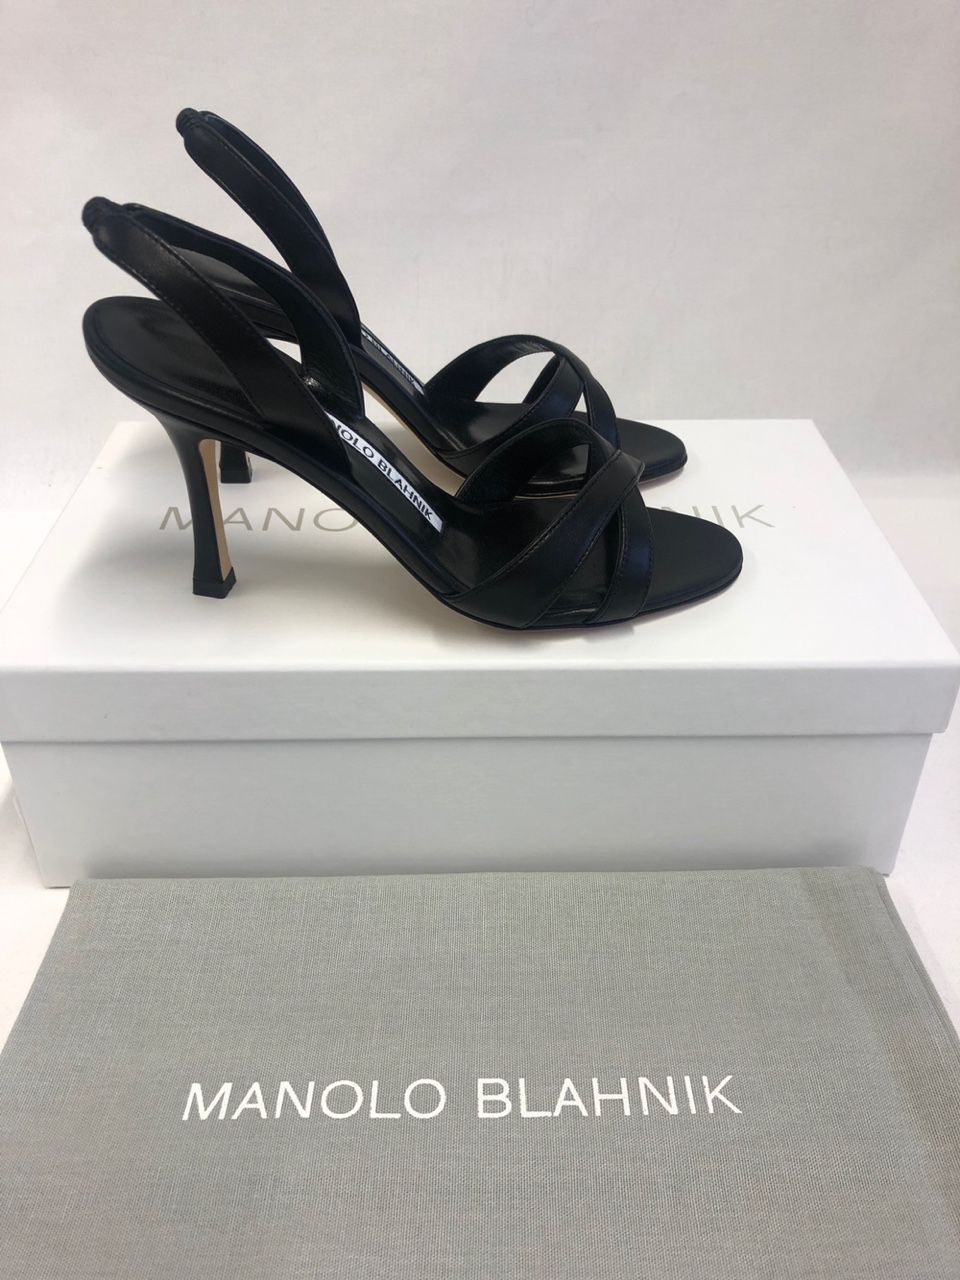 Manolo Blahnik Callasli leather slingback sandals Black 1283924